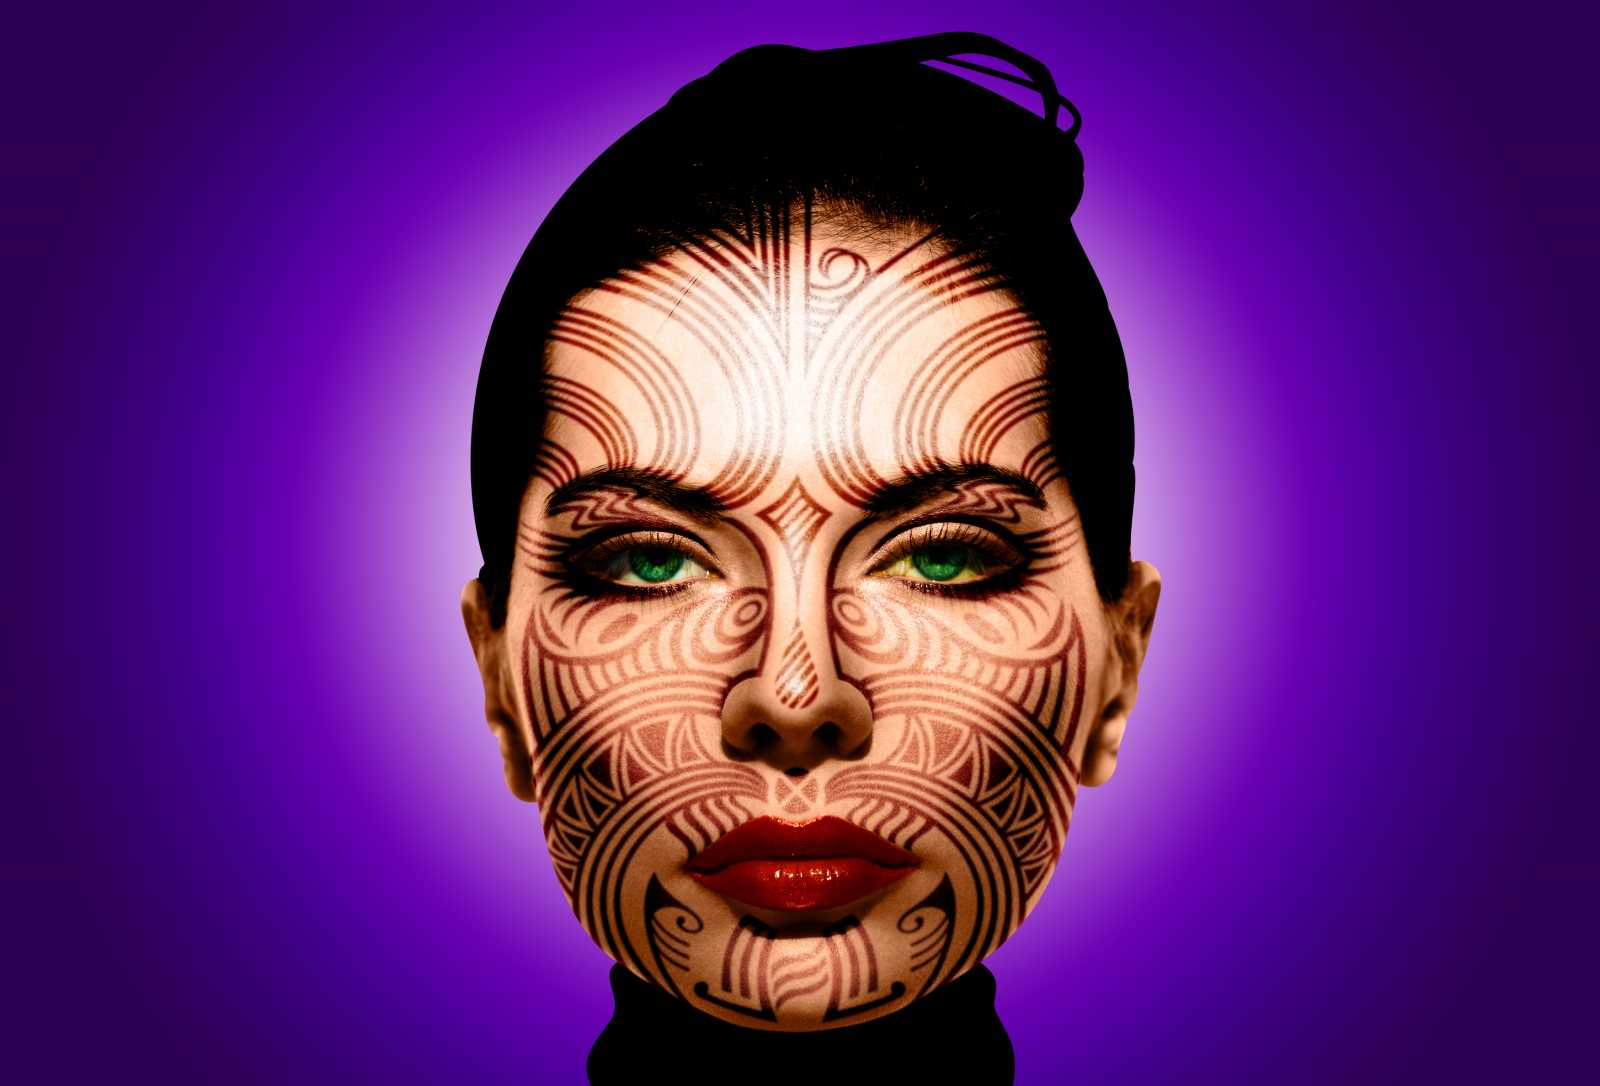 Tattooing Your Face in Photoshop, a deke com article